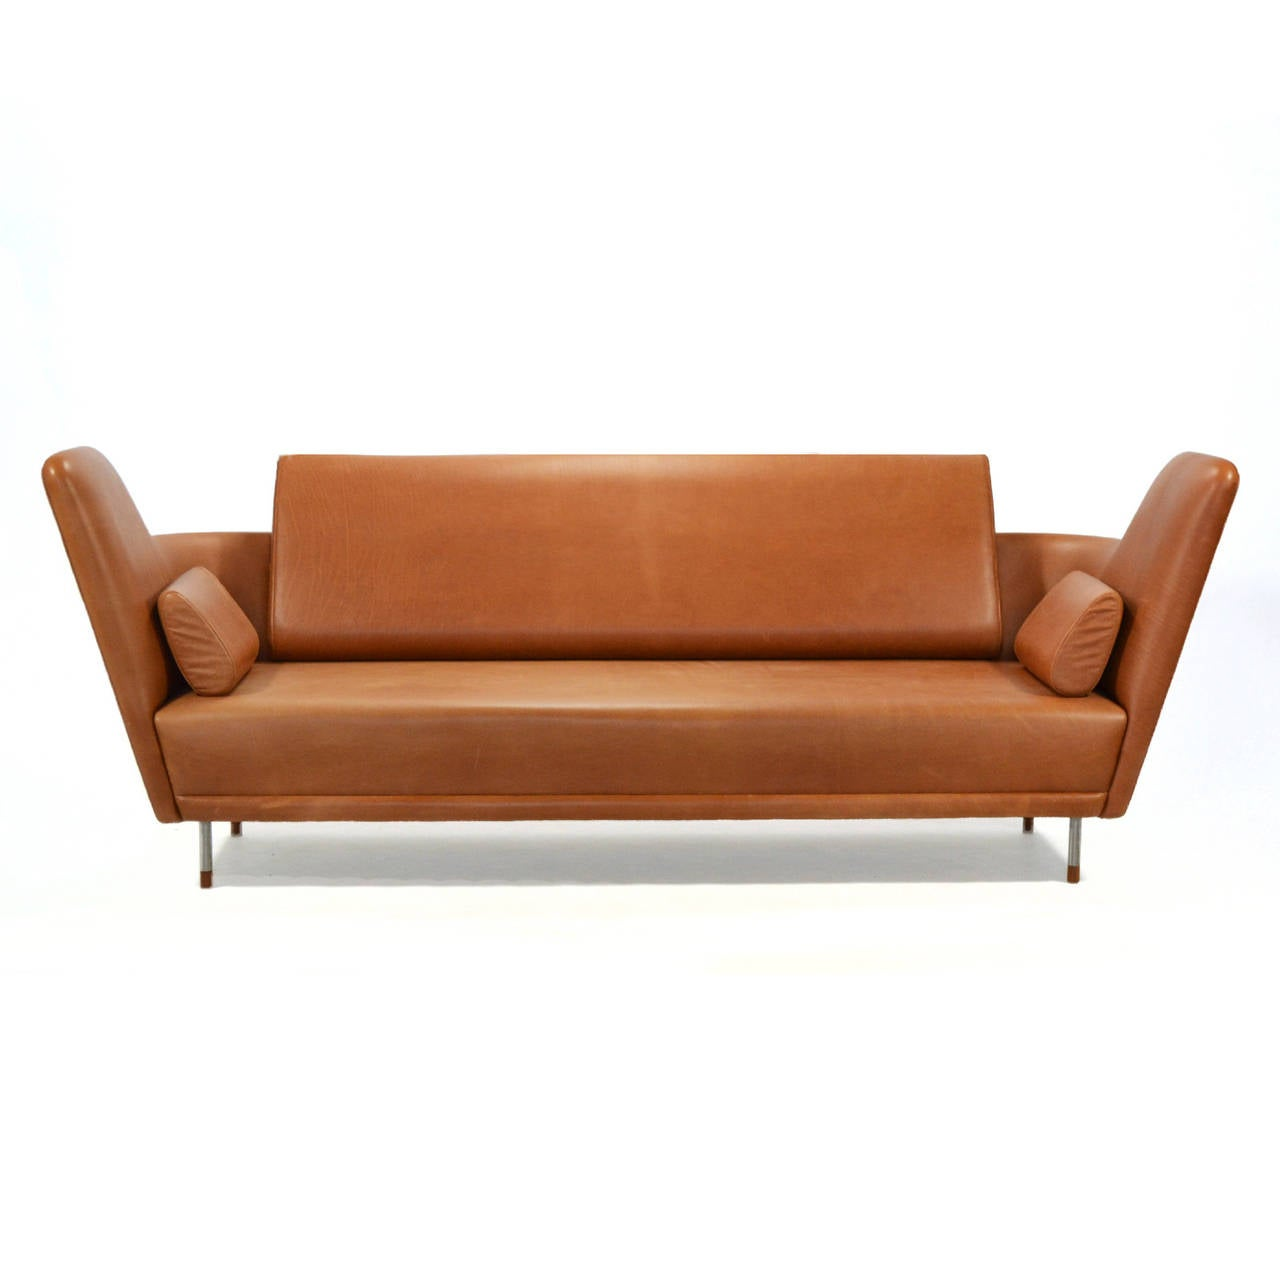 finn juhl model 57 tivoli sofa at 1stdibs. Black Bedroom Furniture Sets. Home Design Ideas